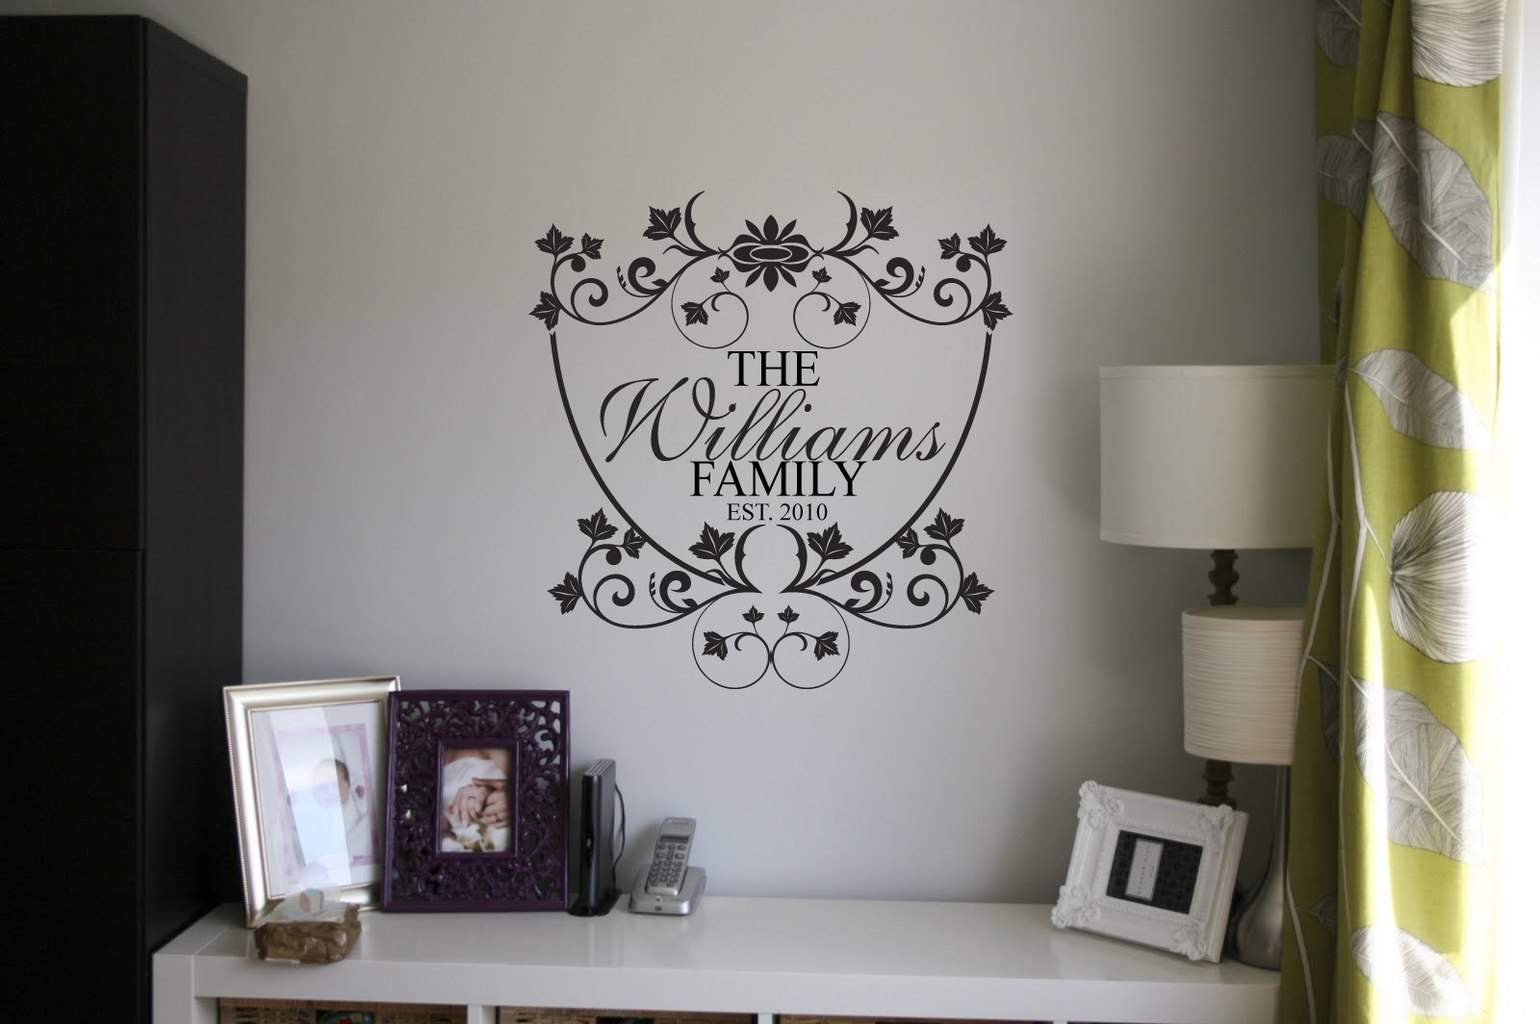 Family Name Wall Art personalised family name wall art decal